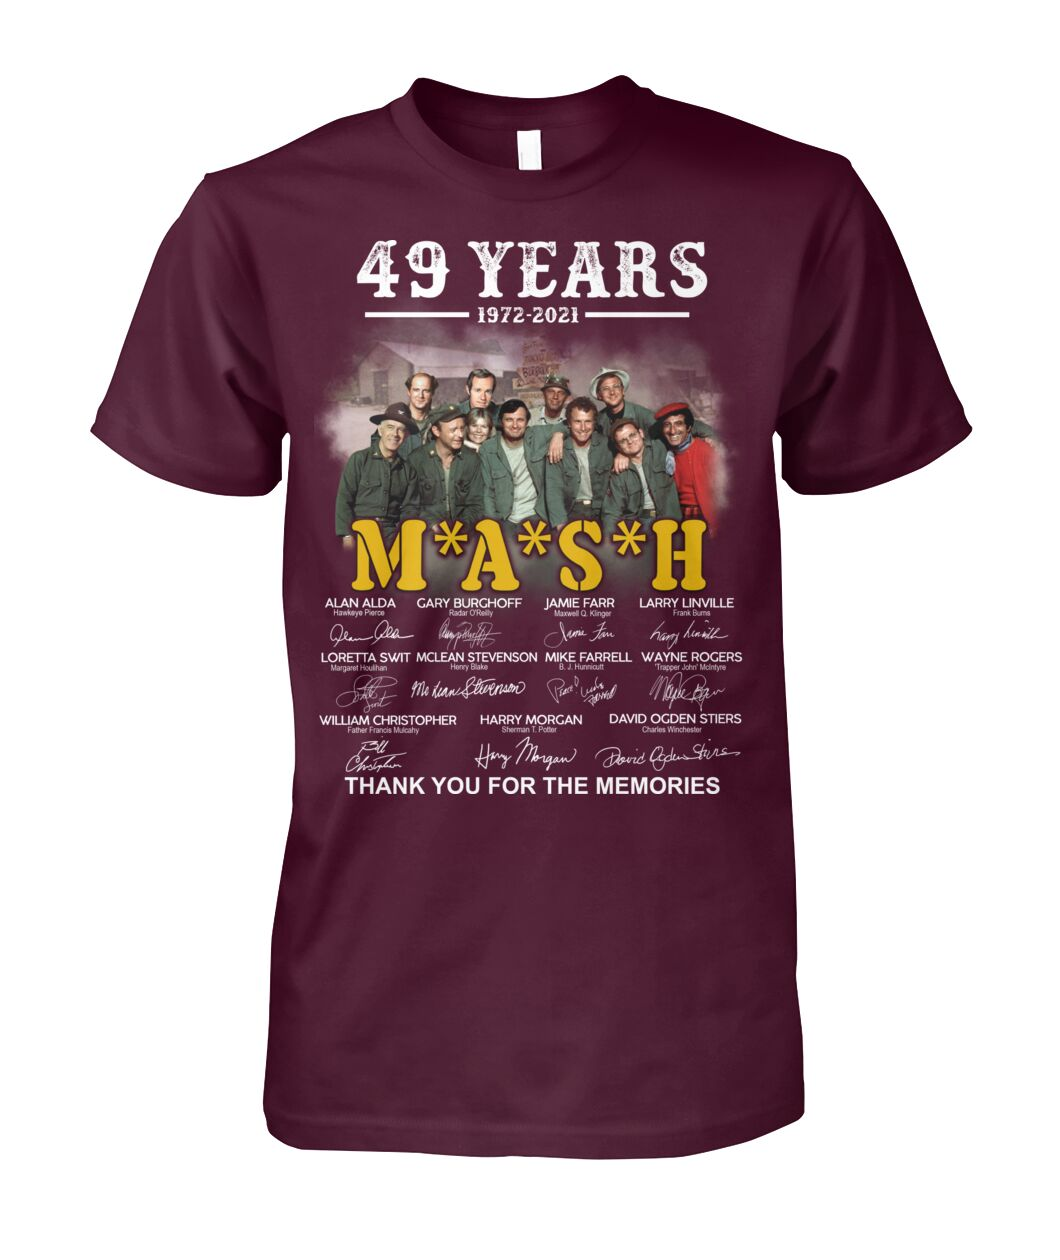 49 years 1972 2021 mash thank you for the memories Shirt 21